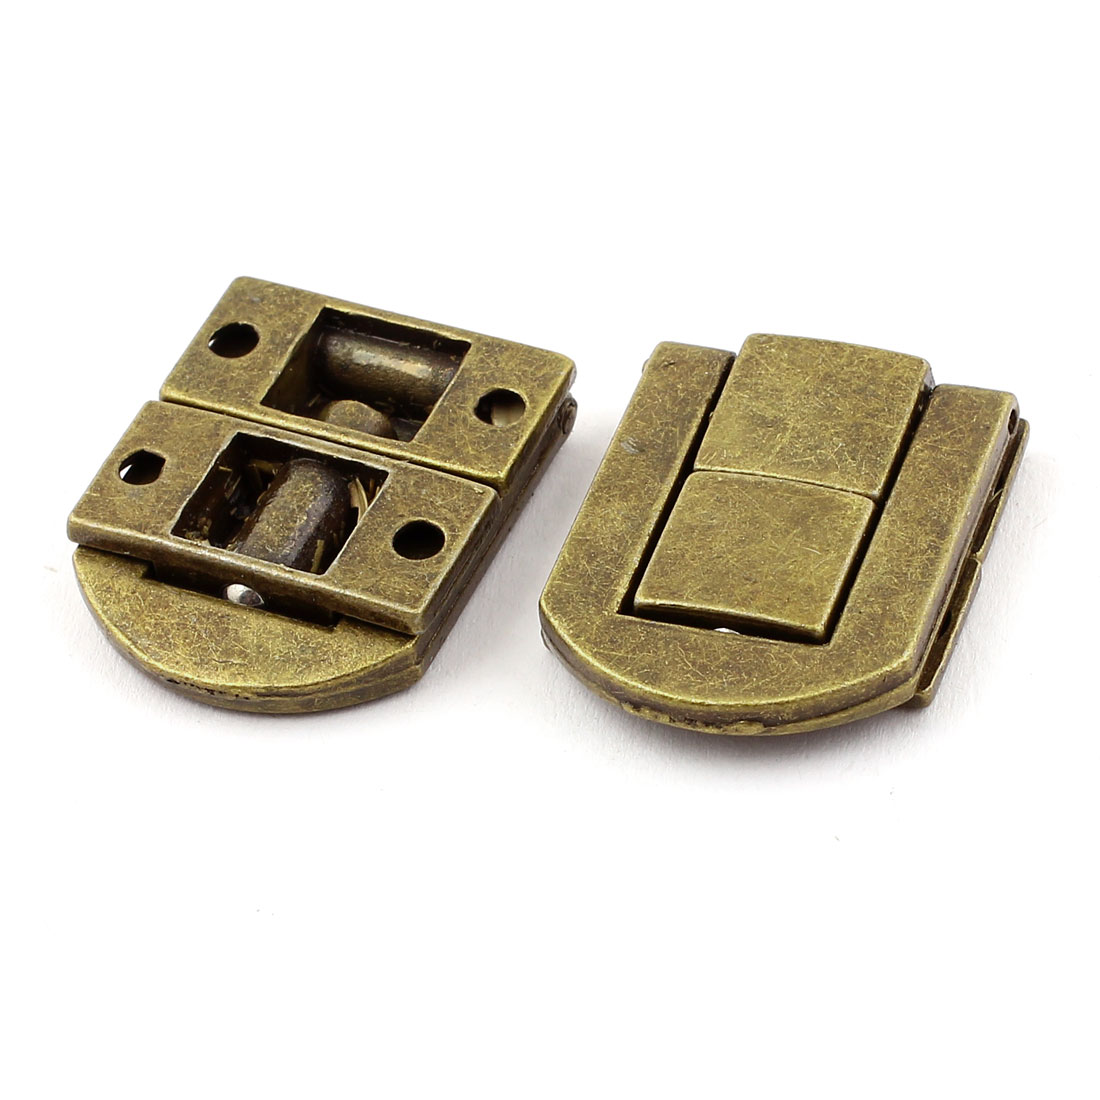 Guitar Case Suitcase Jewelry Box Drawbolt Closure Latch Bronze Tone 2PCS